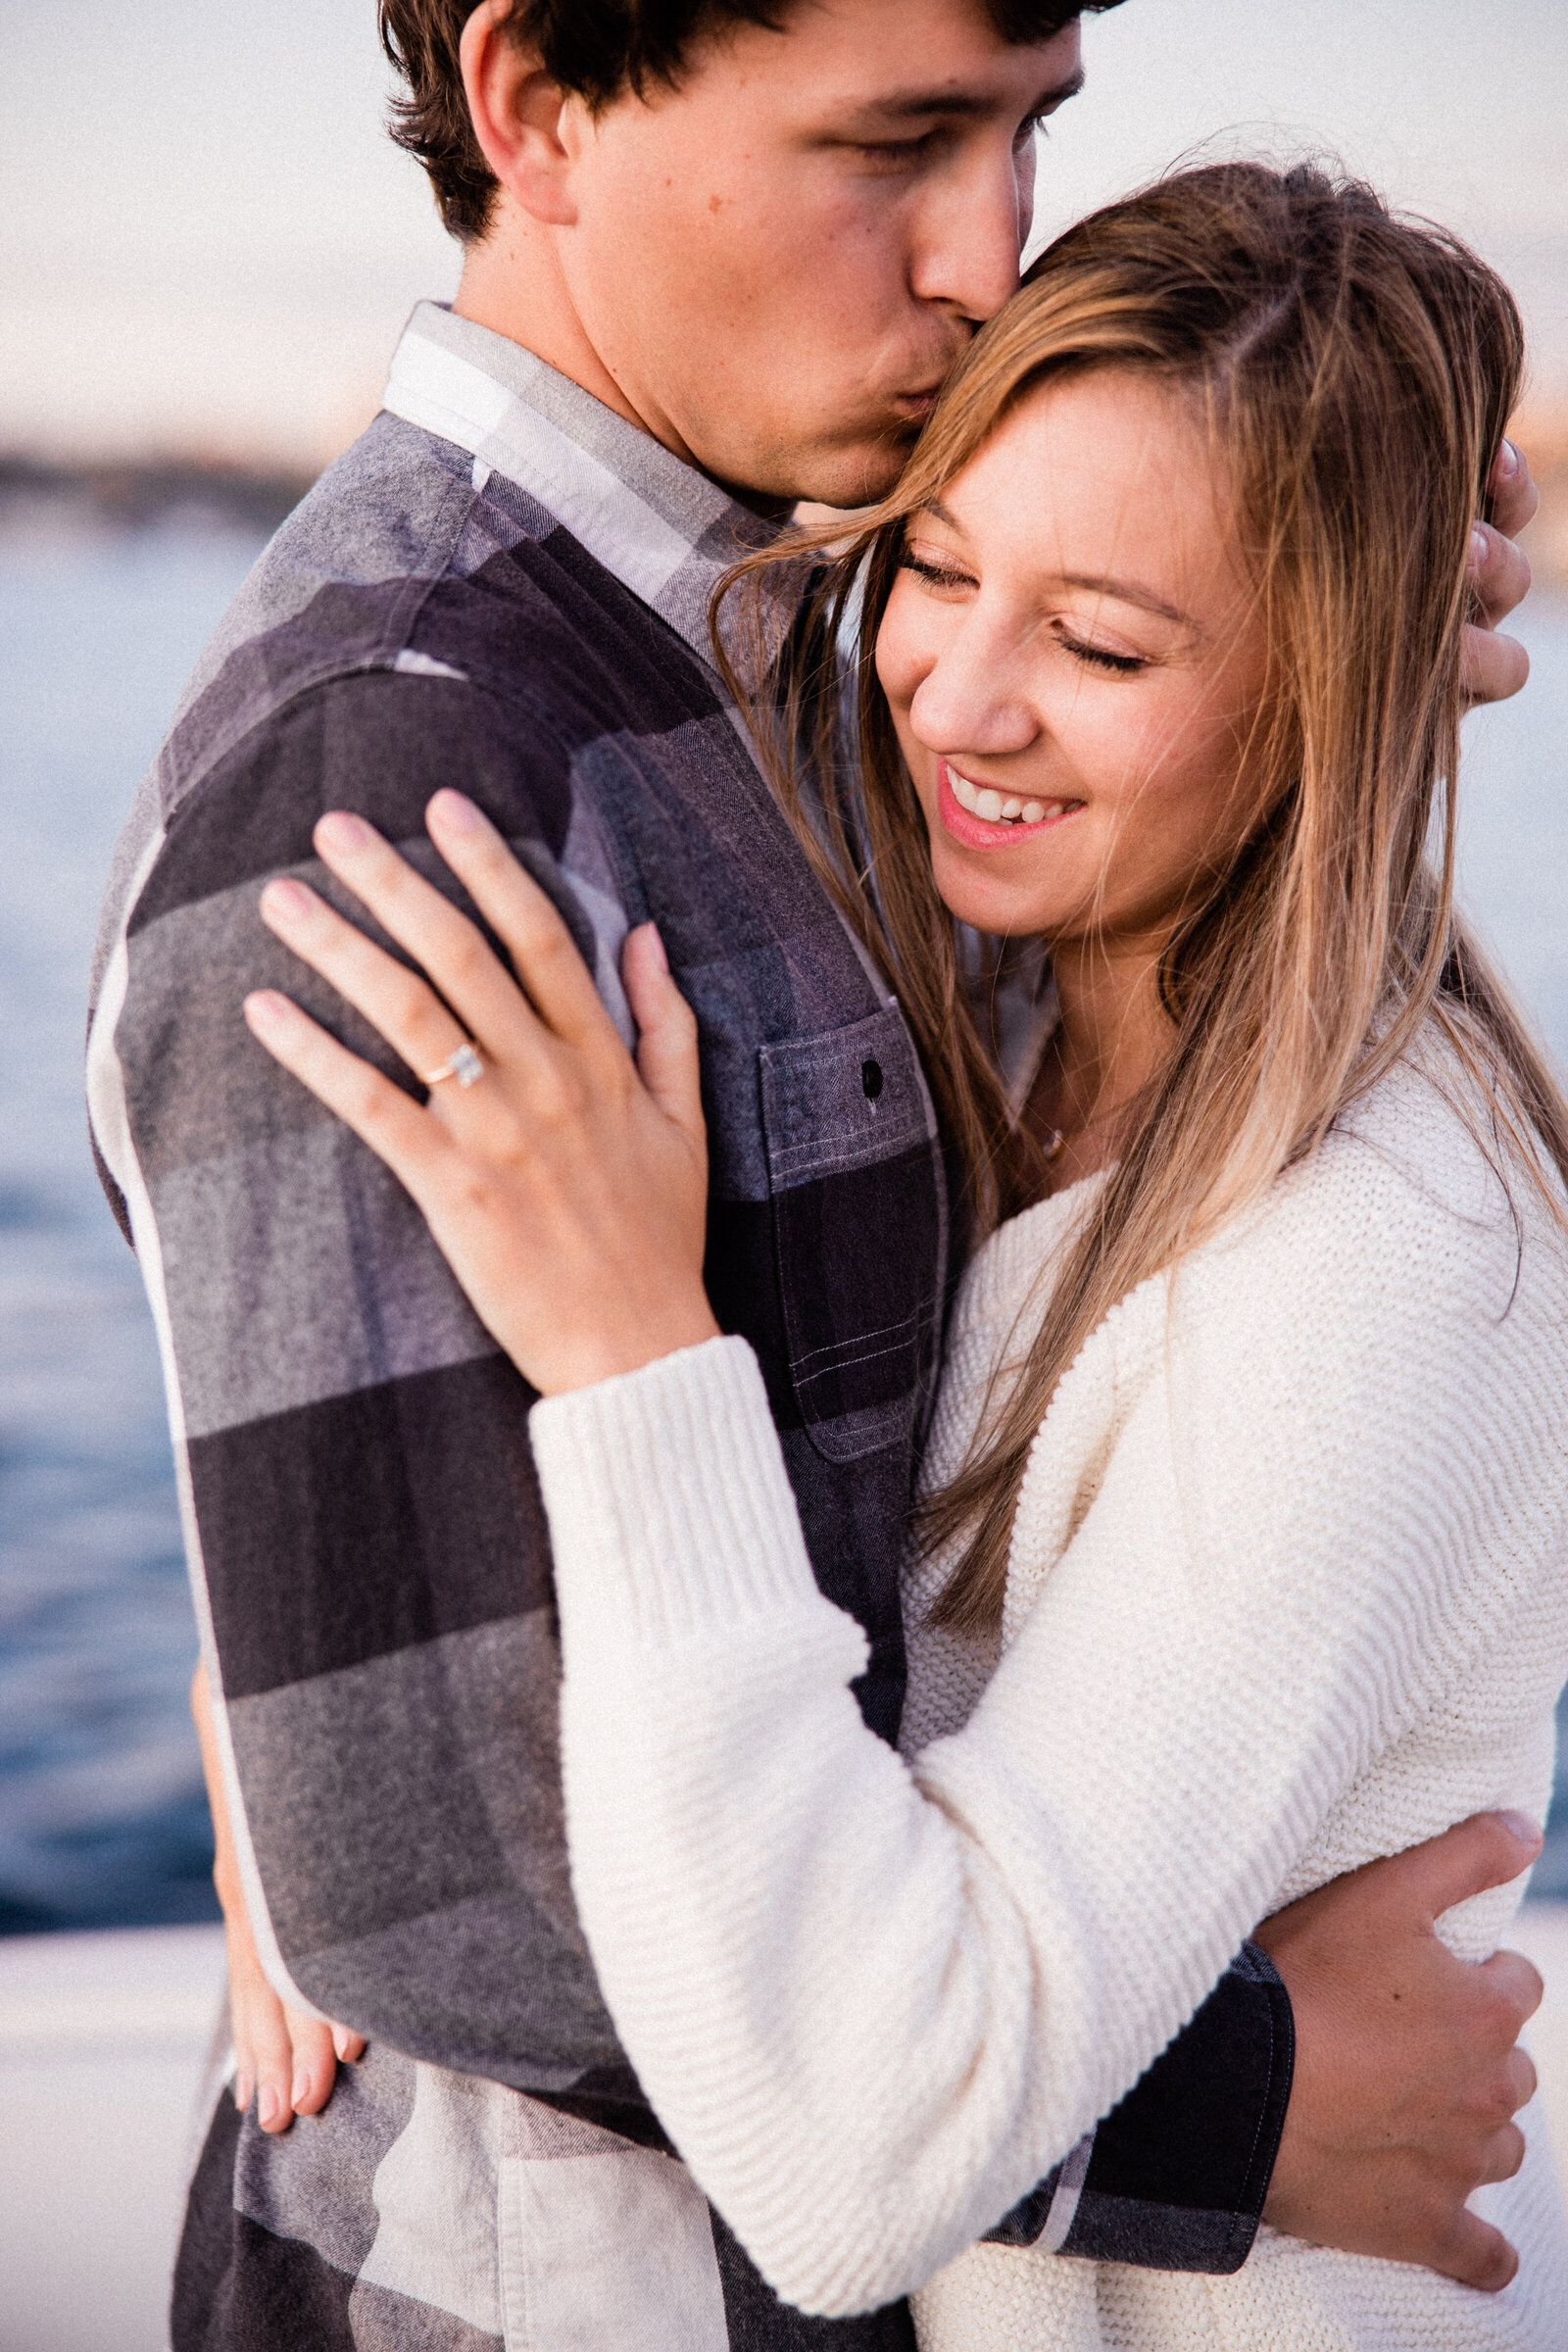 south-lake-union-engagement-photography-seattle-wedding-photographer-and-videographer-13